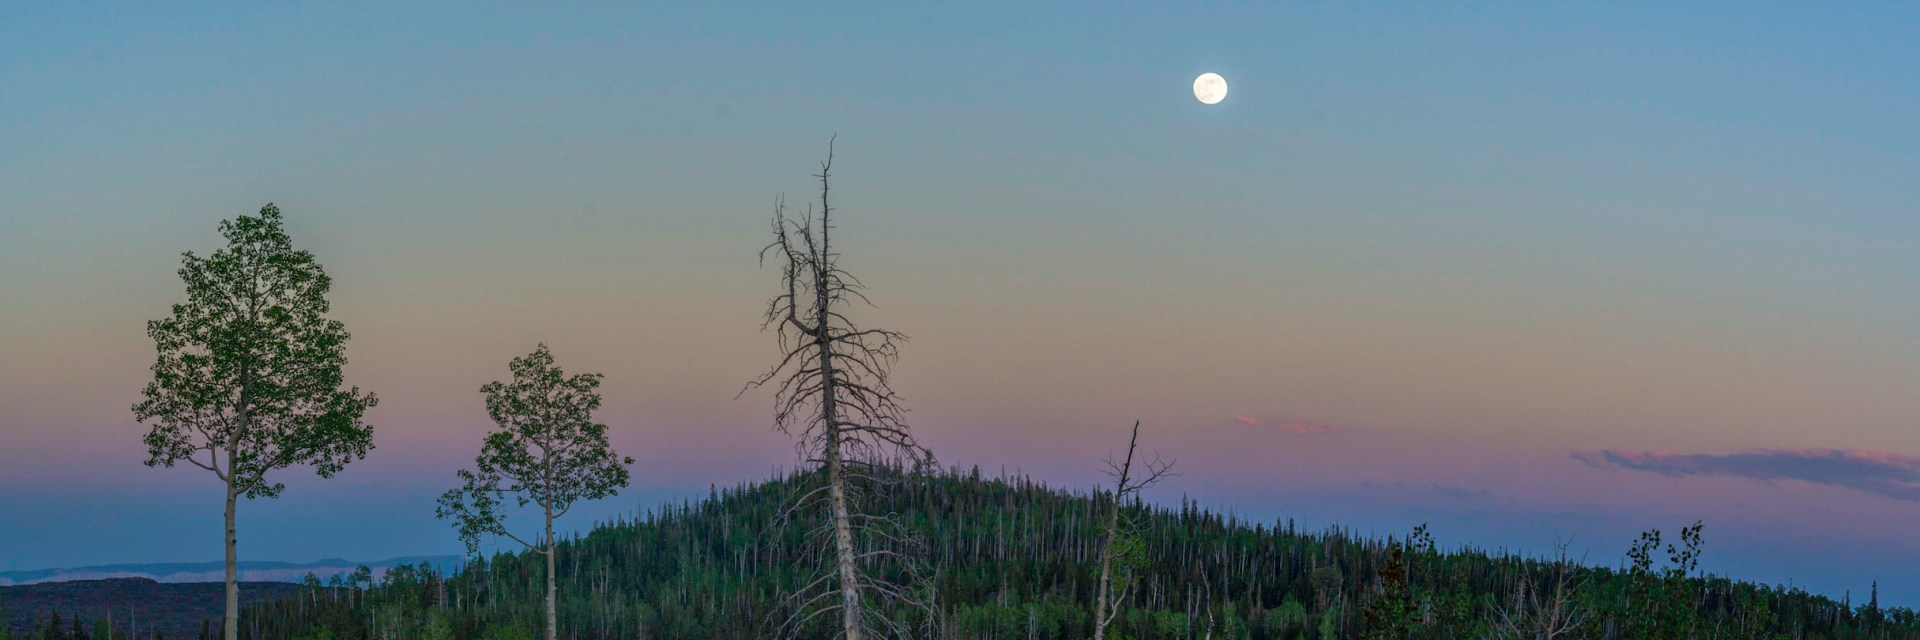 Full moon rising on the markagunt Plateau with aspens.